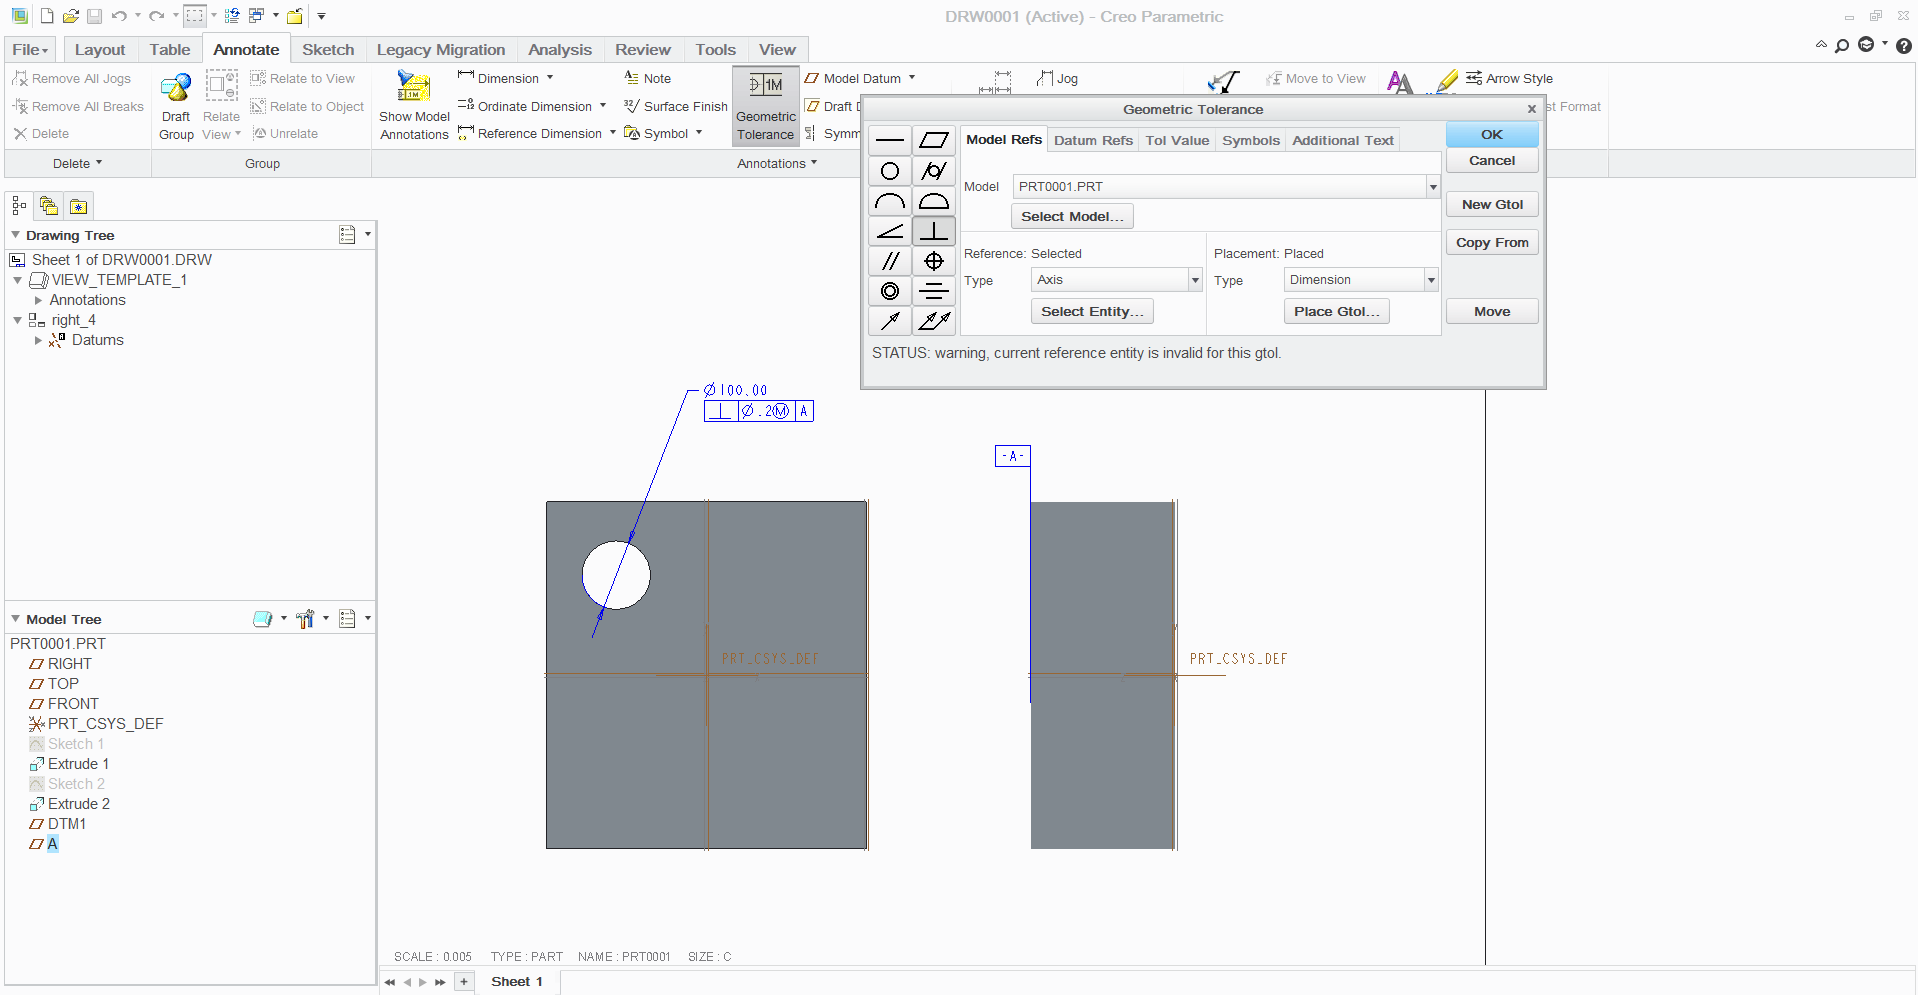 How To Give Geometric Tolerances In Creo Parametric Grabcad Questions